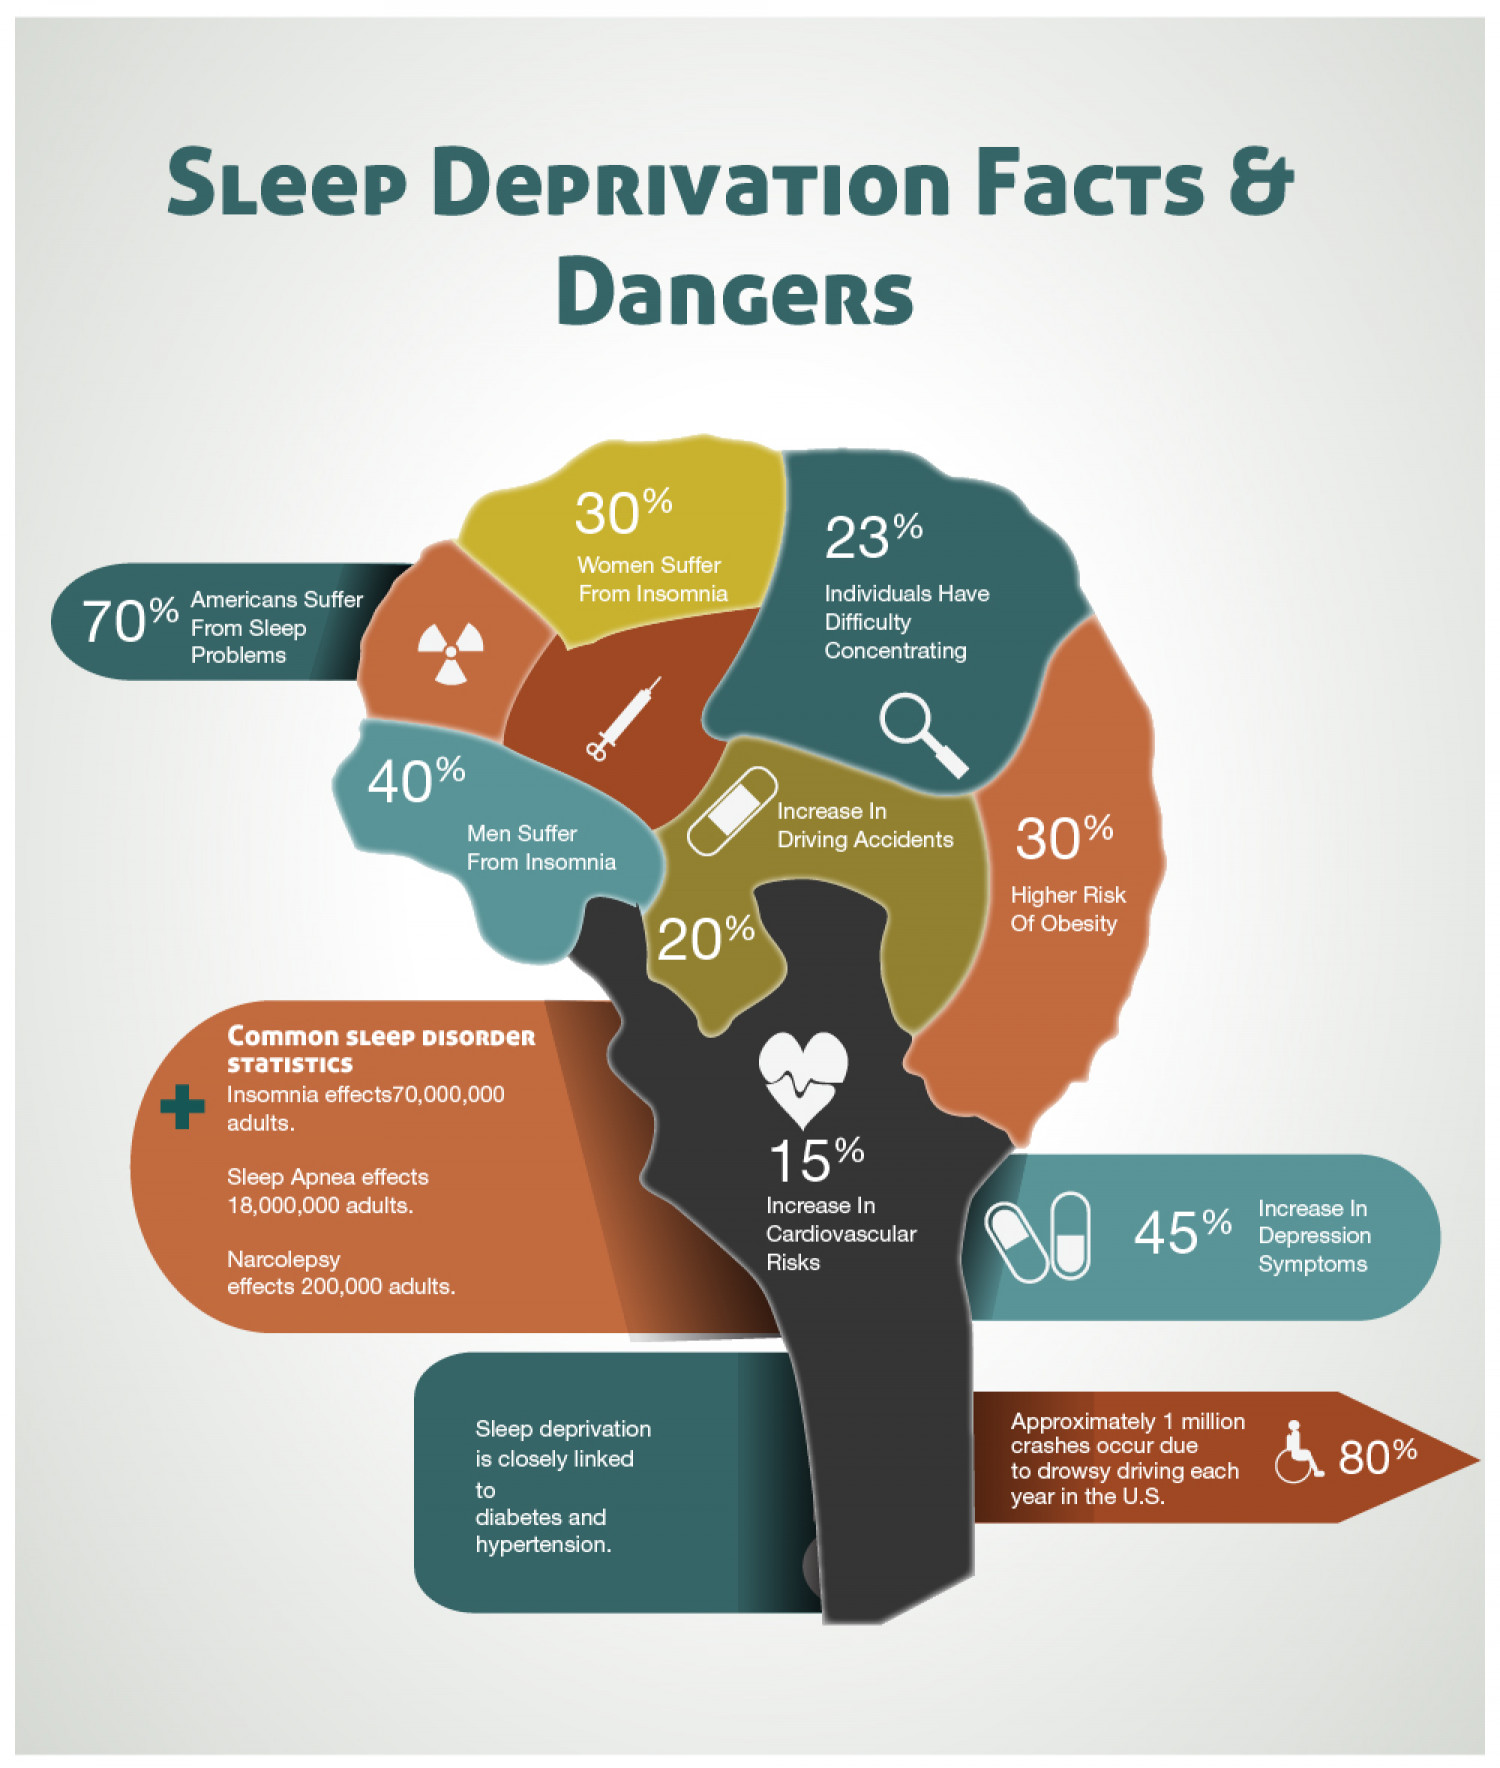 Sleep Deprivation Facts & Dangers Infographic